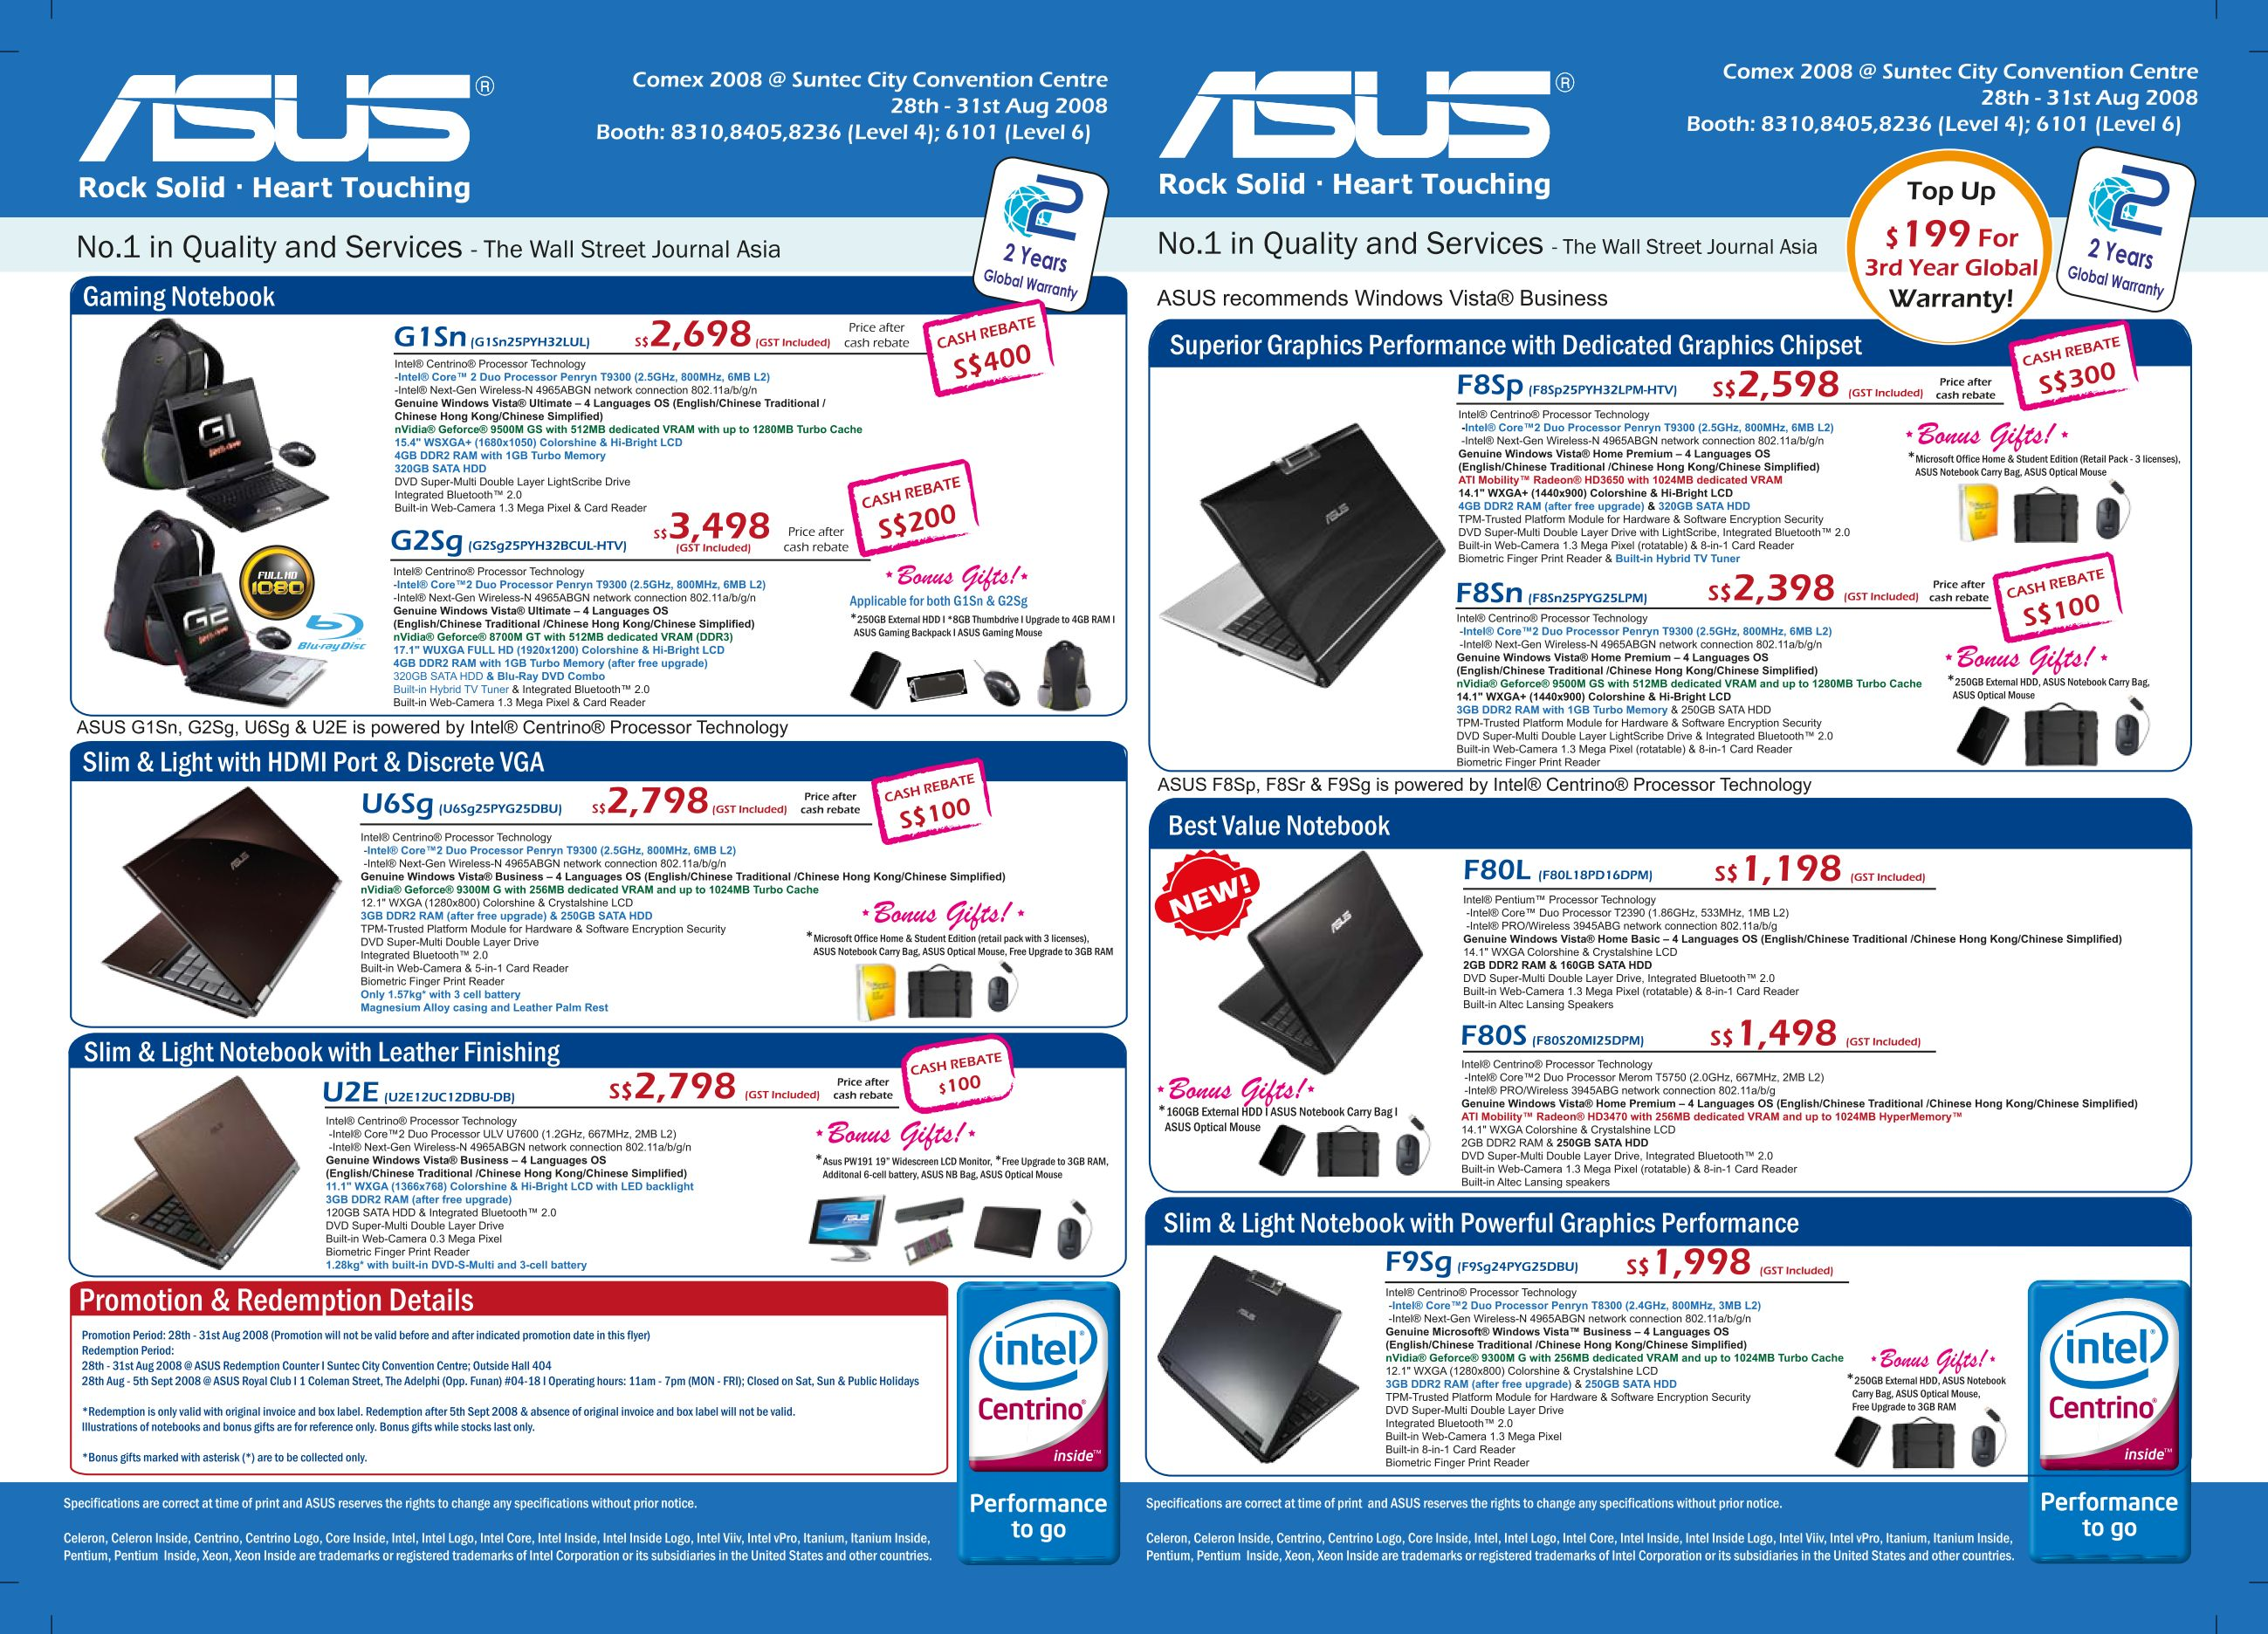 Comex 2008 price list image brochure of Asus Notebooks 1